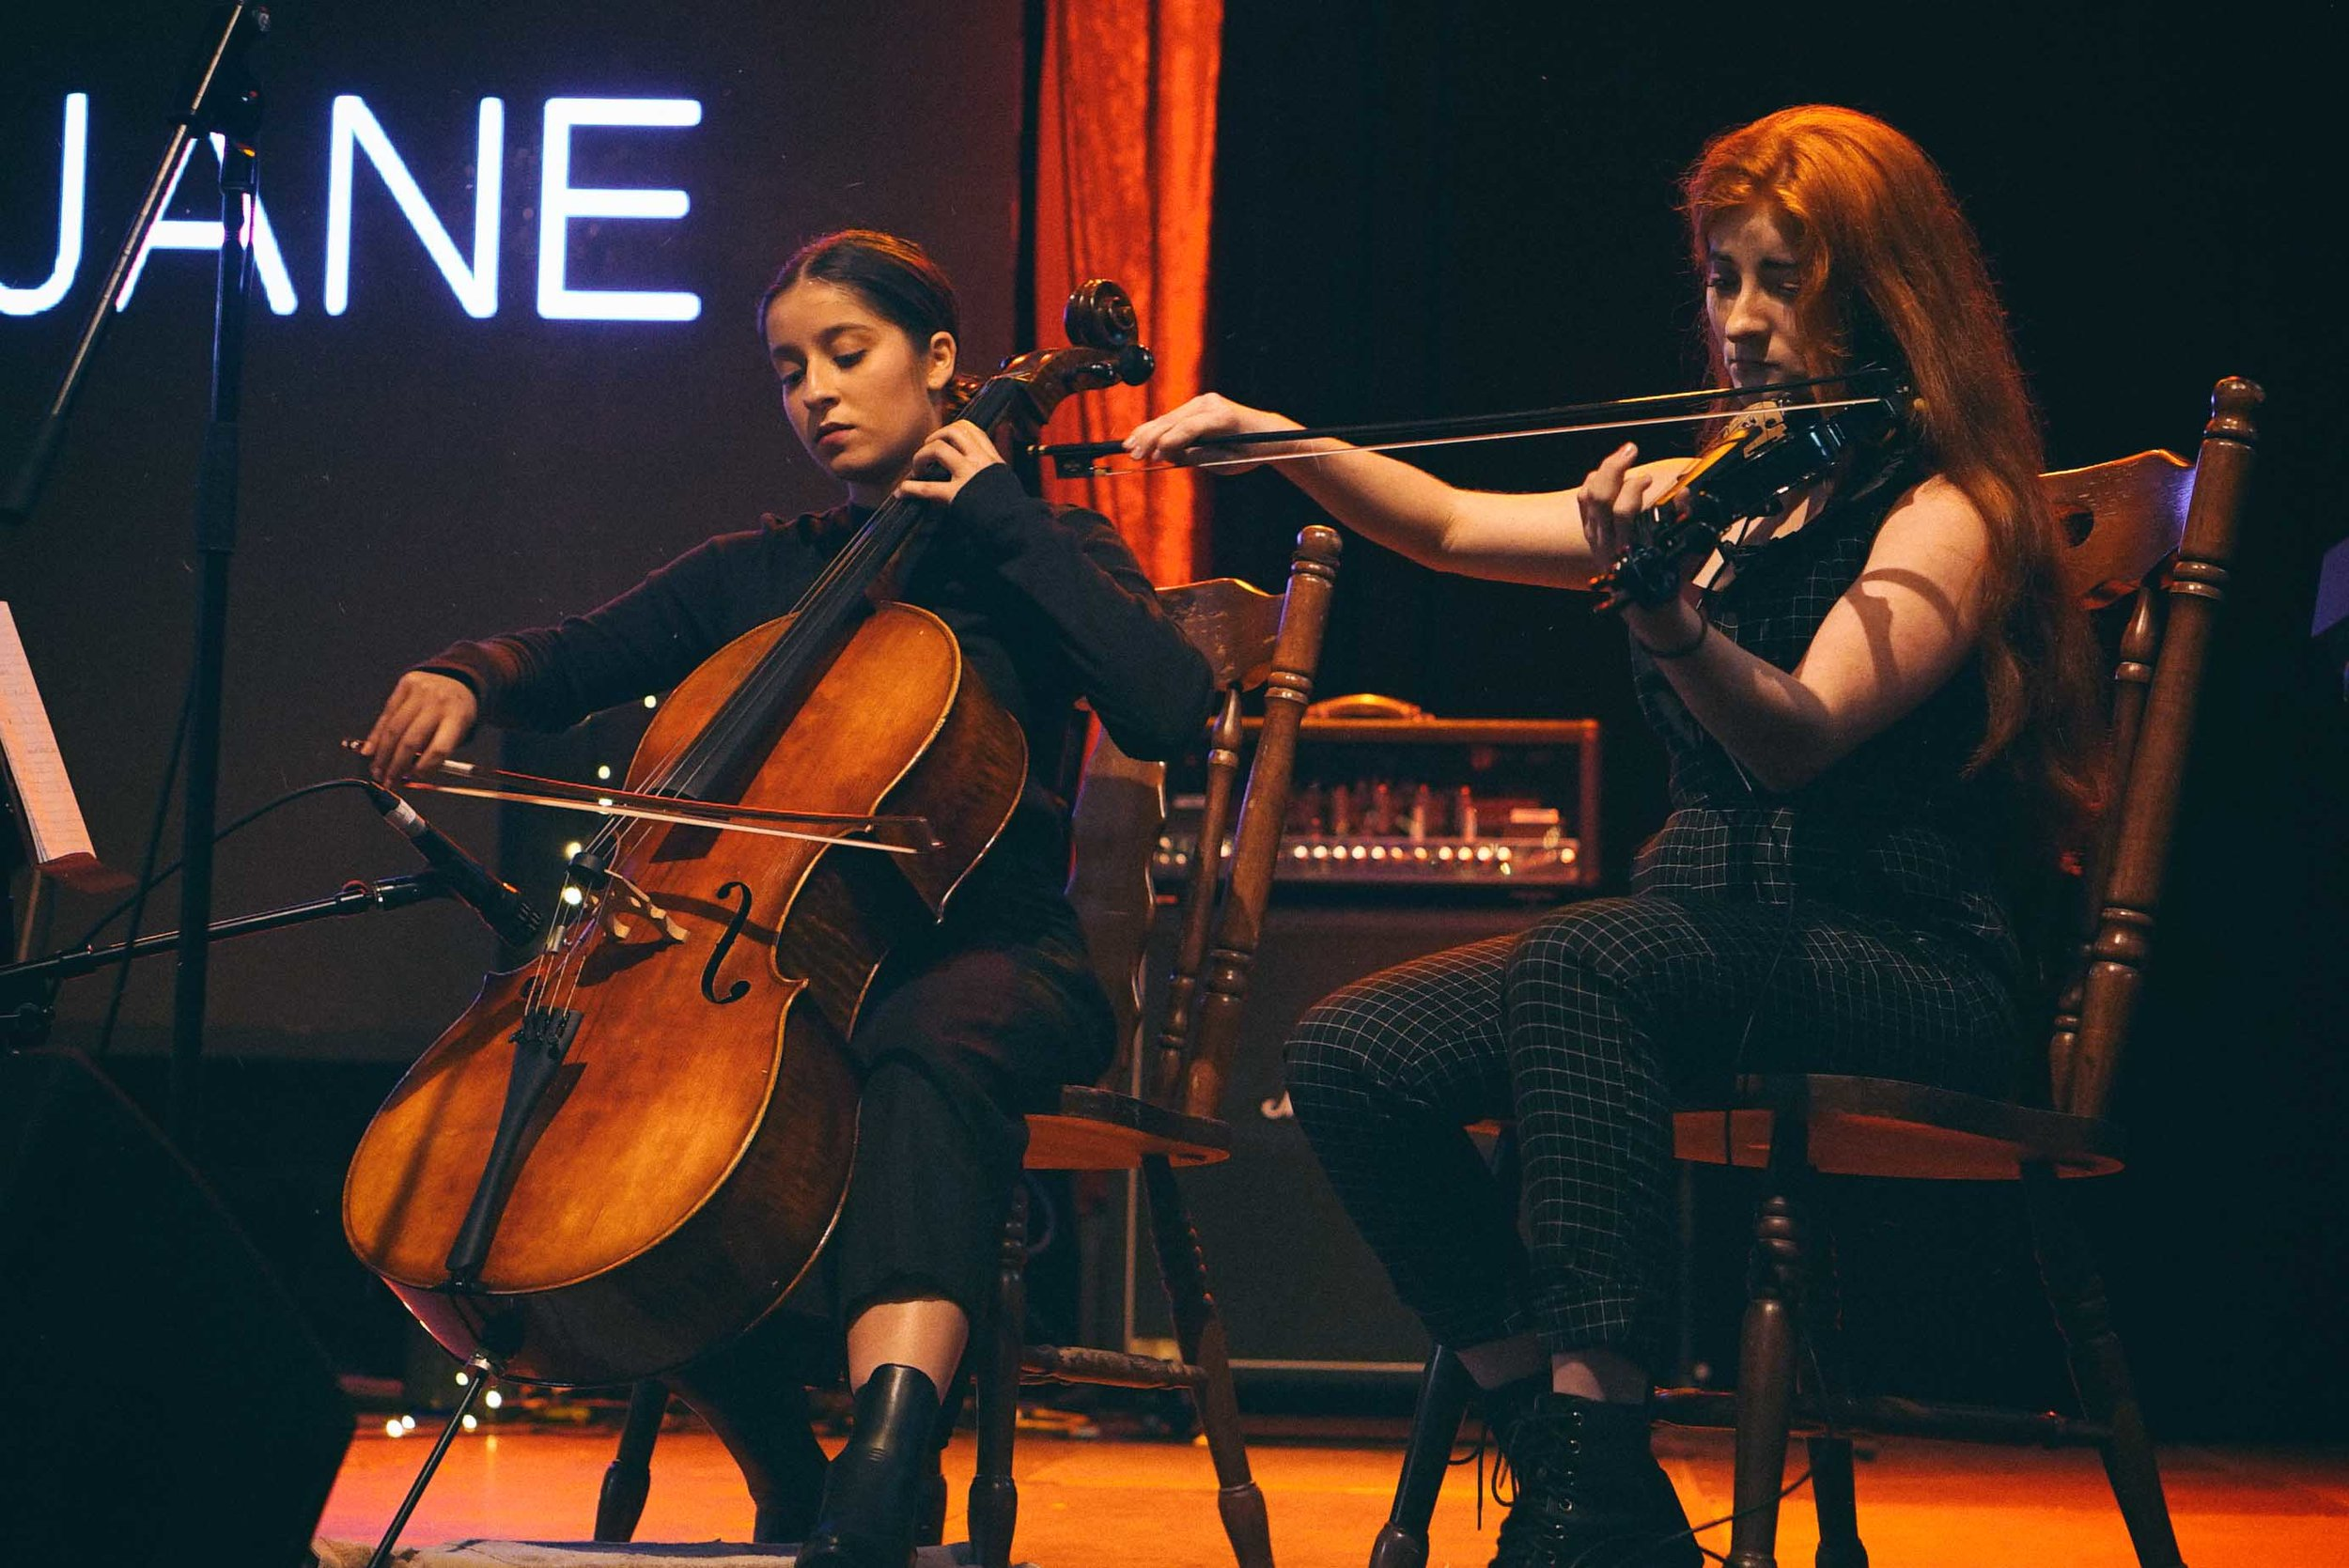 String duo performing with Emily Jane at NightQuarter 2018